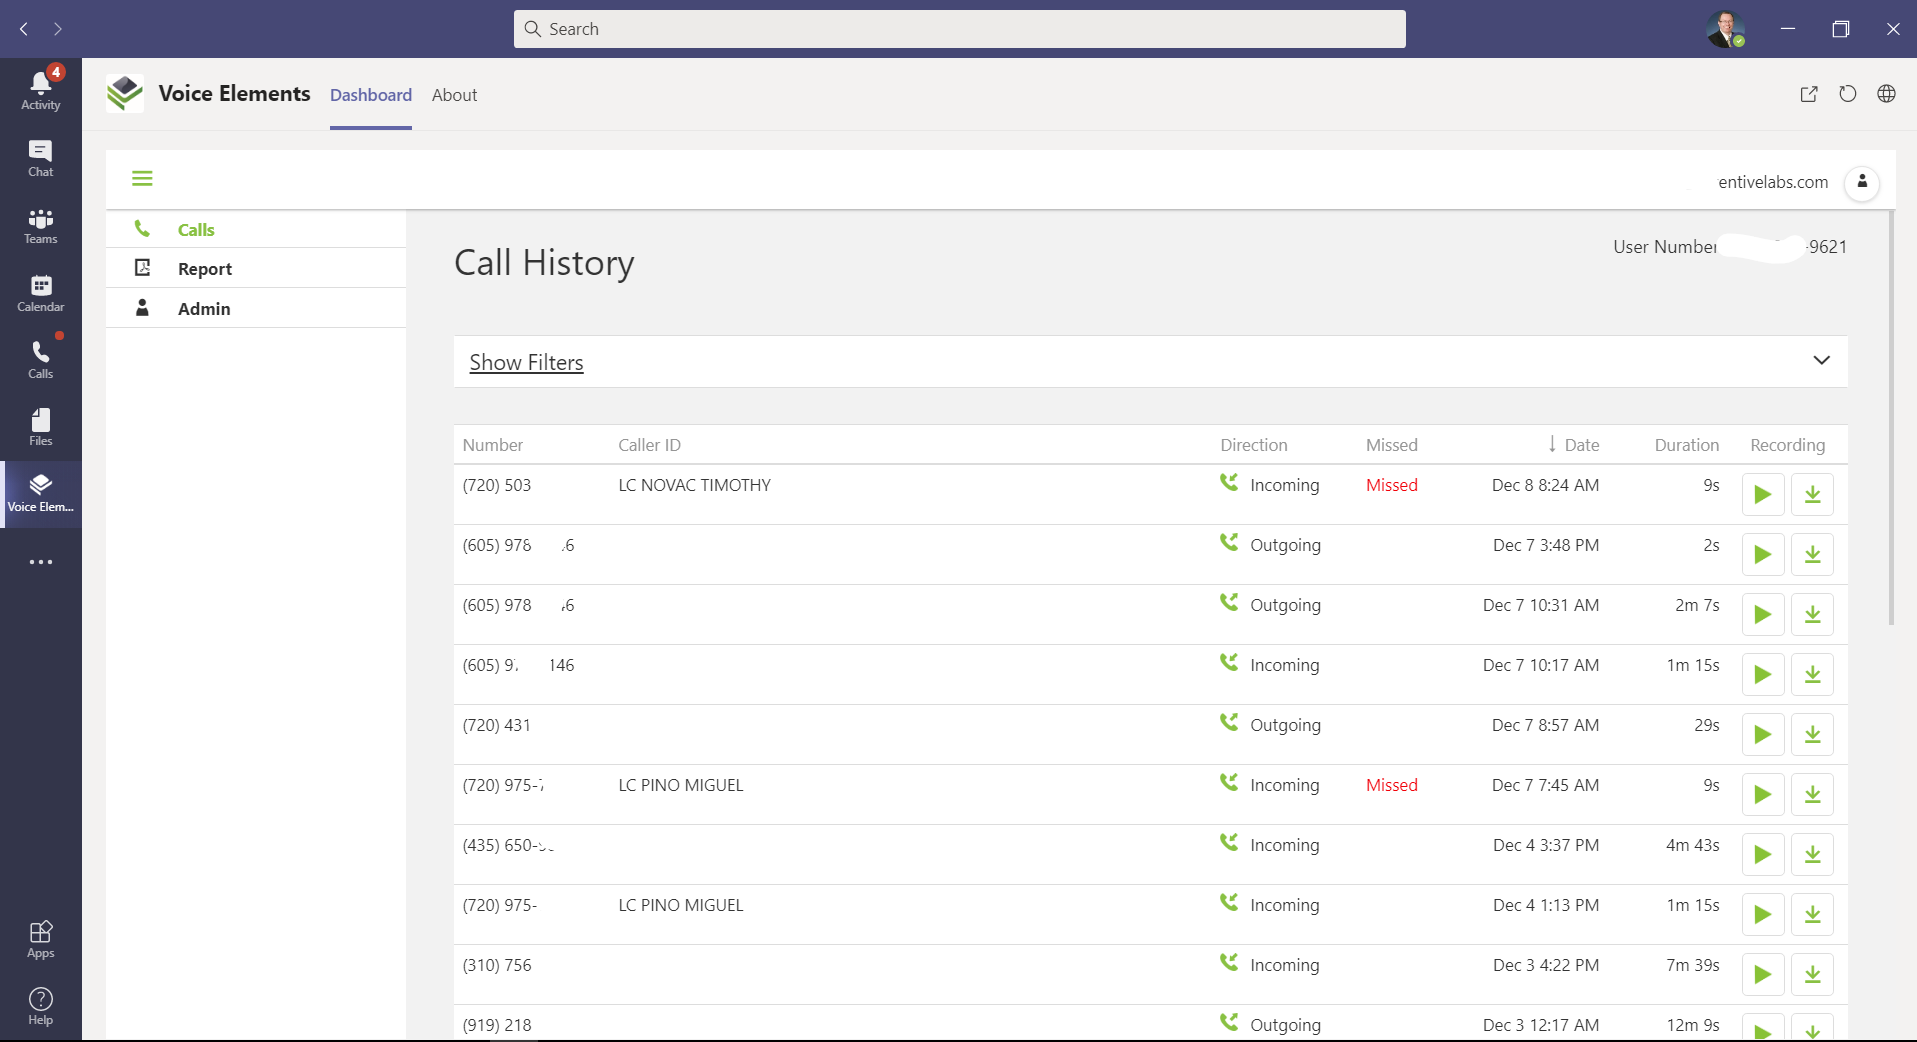 Voice Elements Calling Plan - Call History